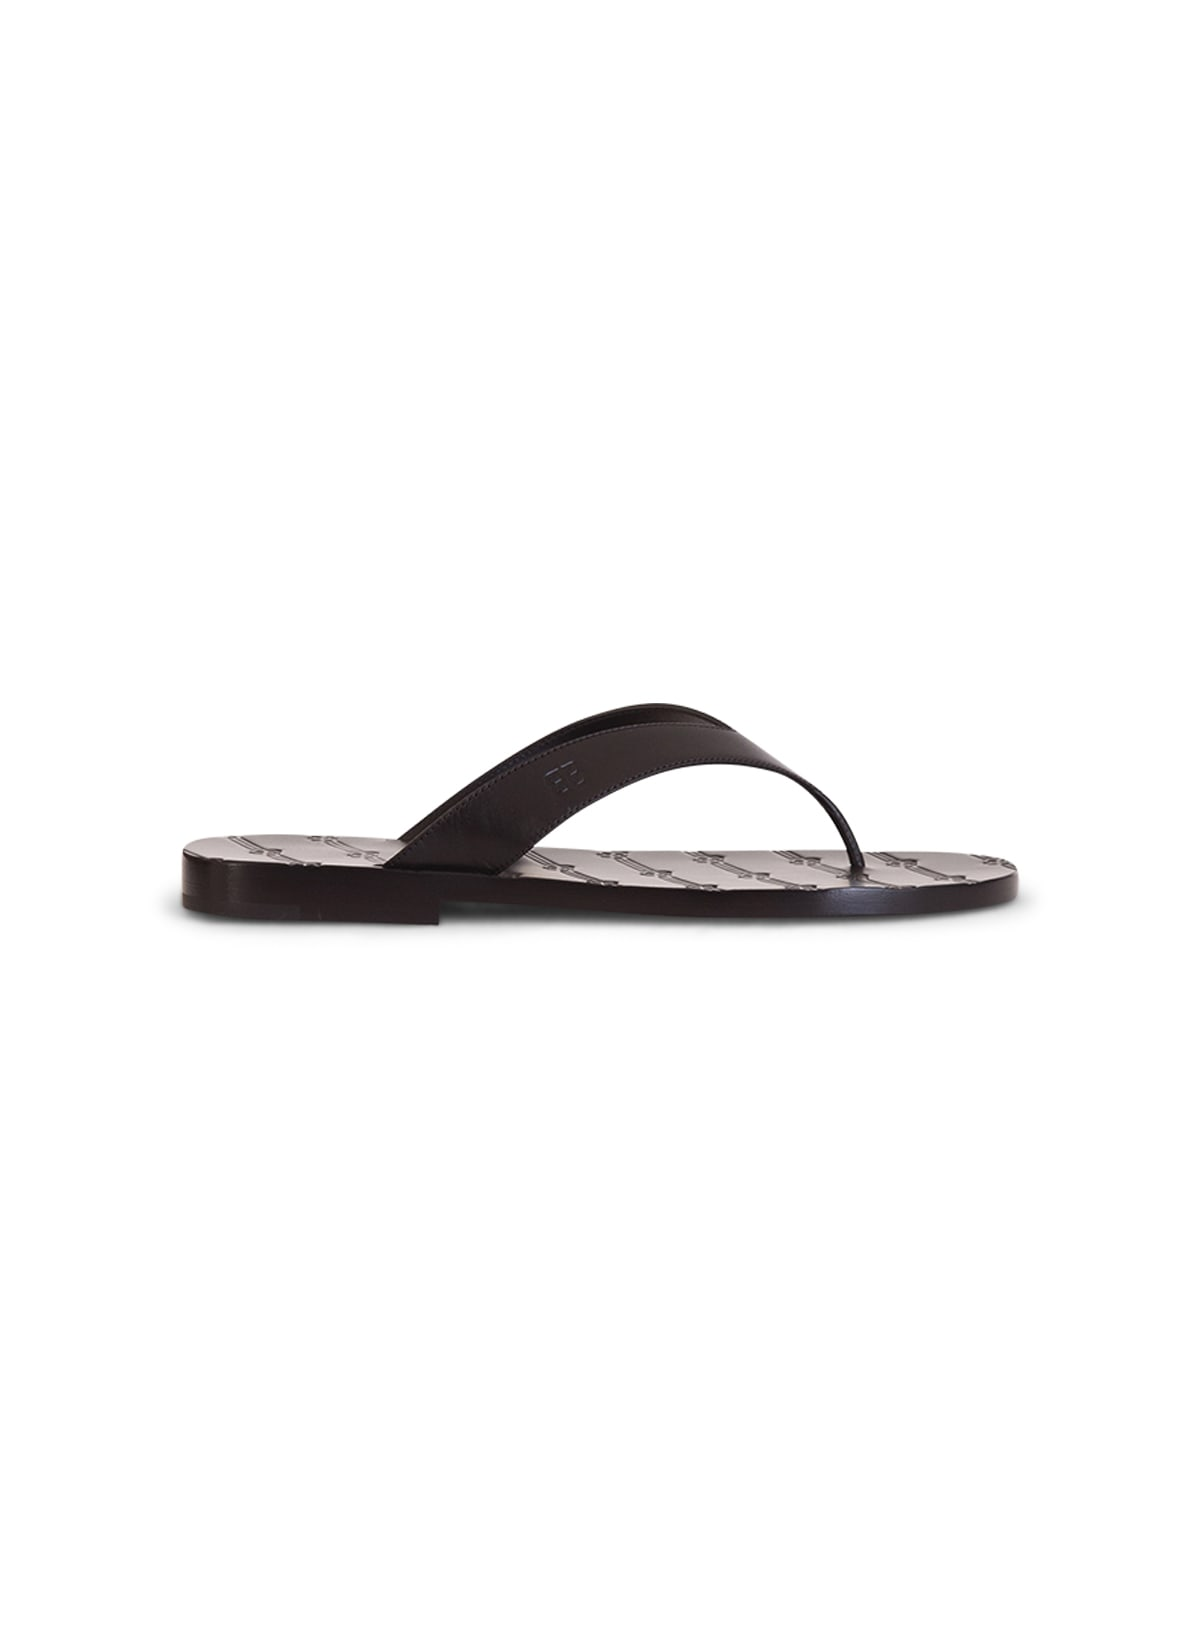 Balenciaga LICENSE THONG SANDALS